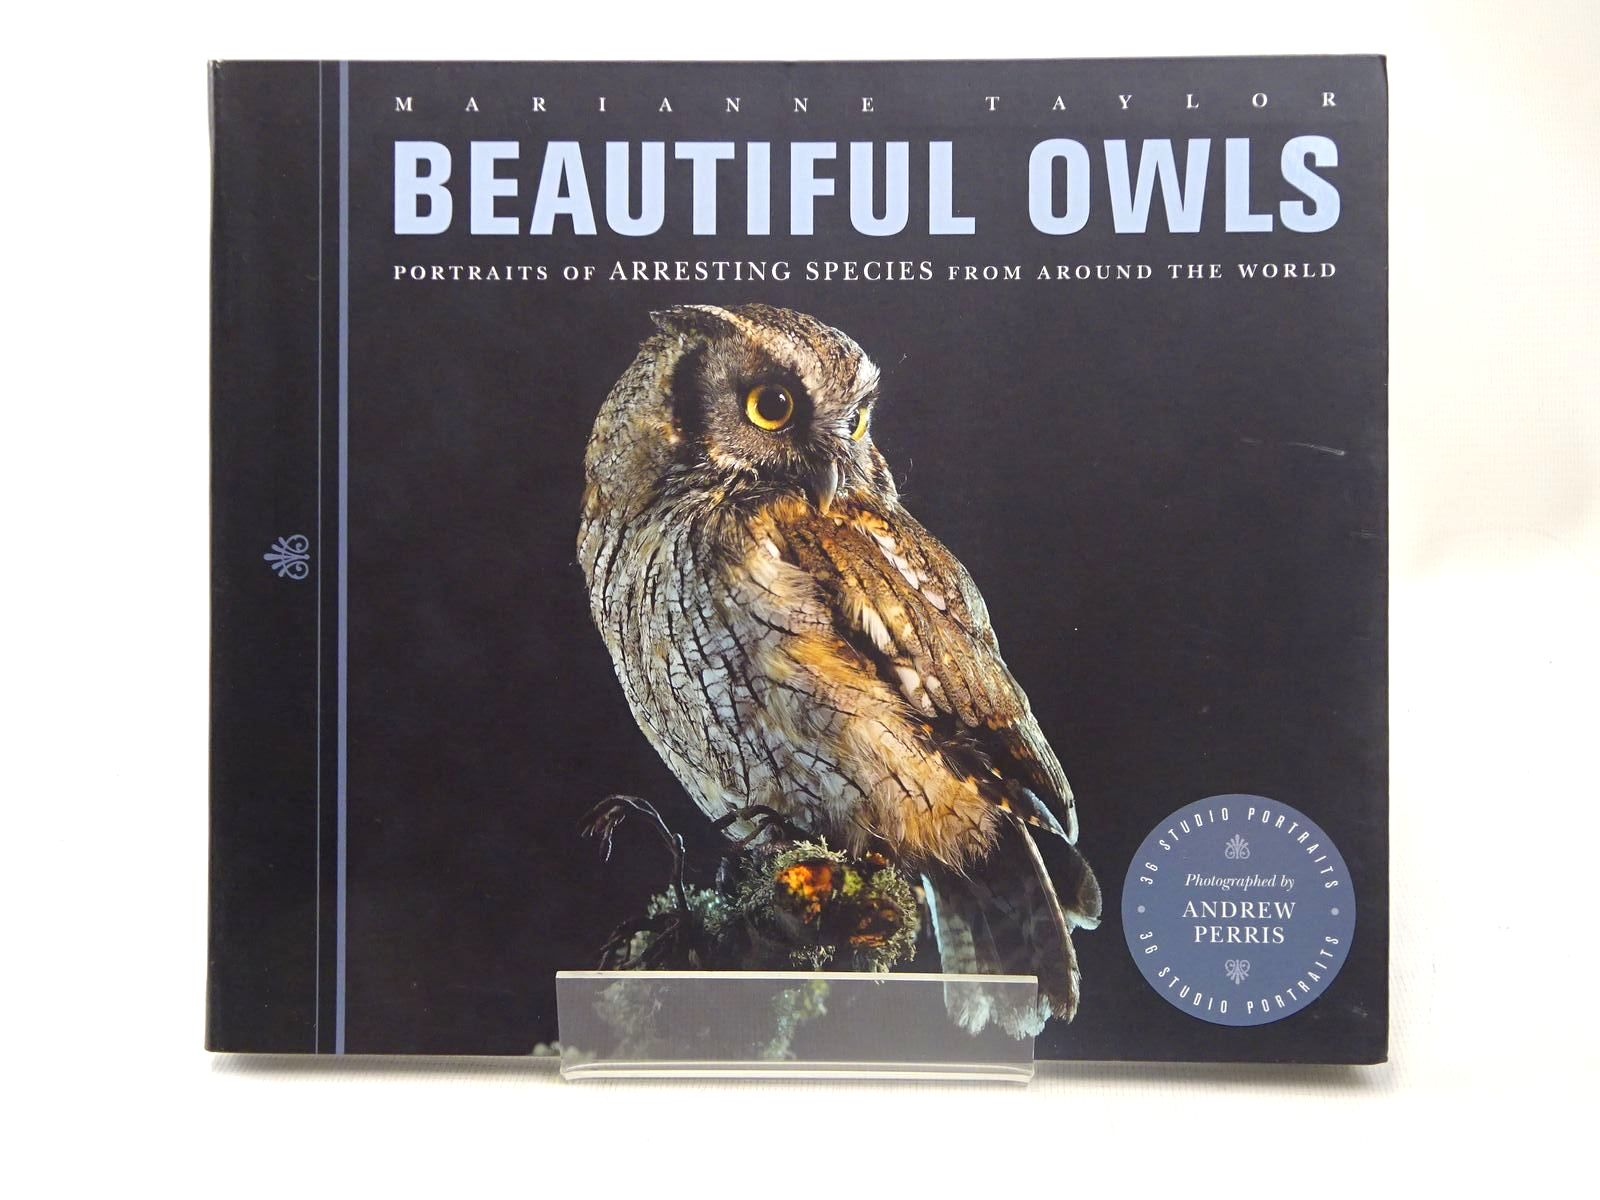 Photo of BEAUTIFUL OWLS written by Taylor, Marianne illustrated by Perris, Andrew published by Ivy Press (STOCK CODE: 1317463)  for sale by Stella & Rose's Books